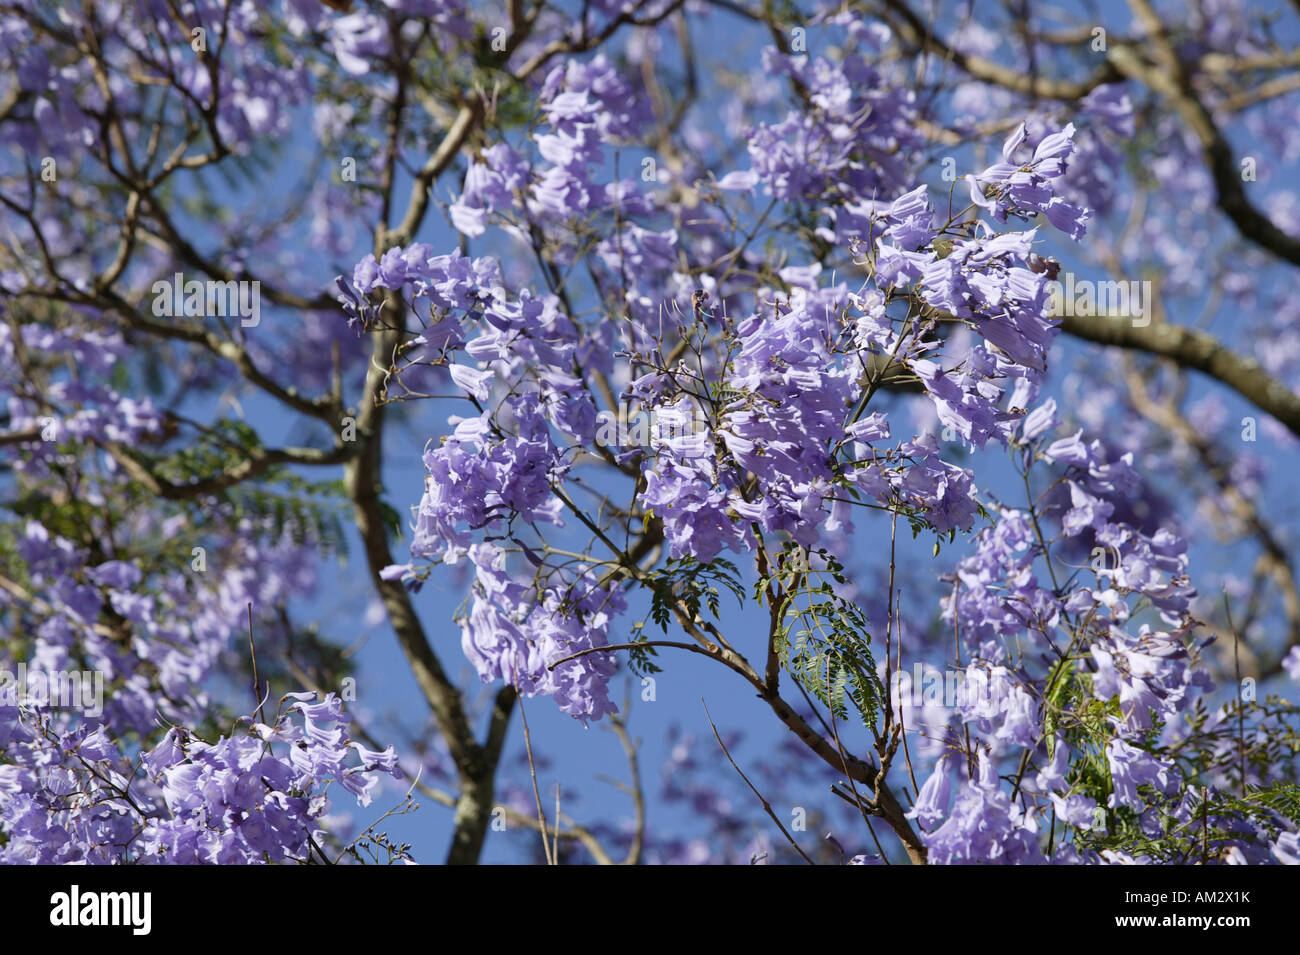 Rosewood Plant Stock Photos Rosewood Plant Stock Images Alamy